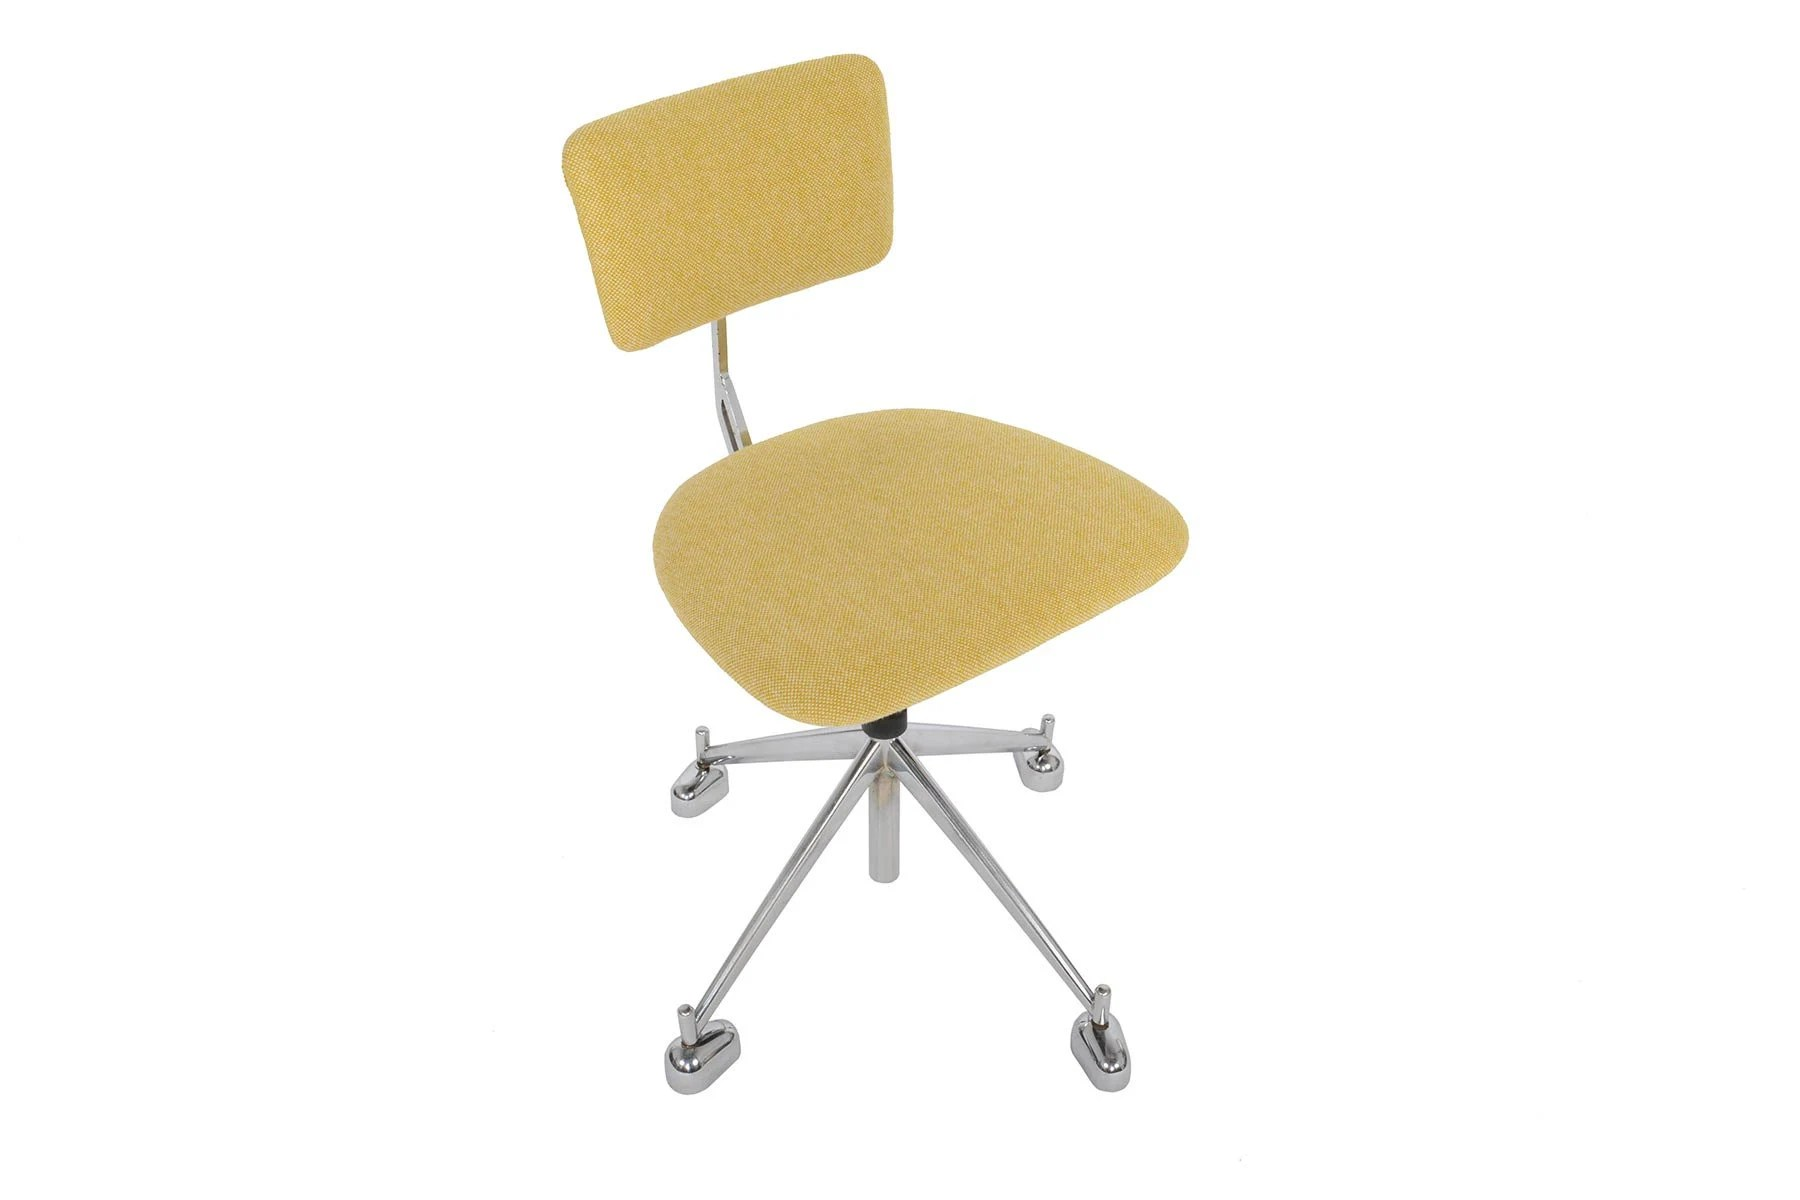 Kevi Chair Danish Mid Century Modern Rolling Office Chair By Kevi